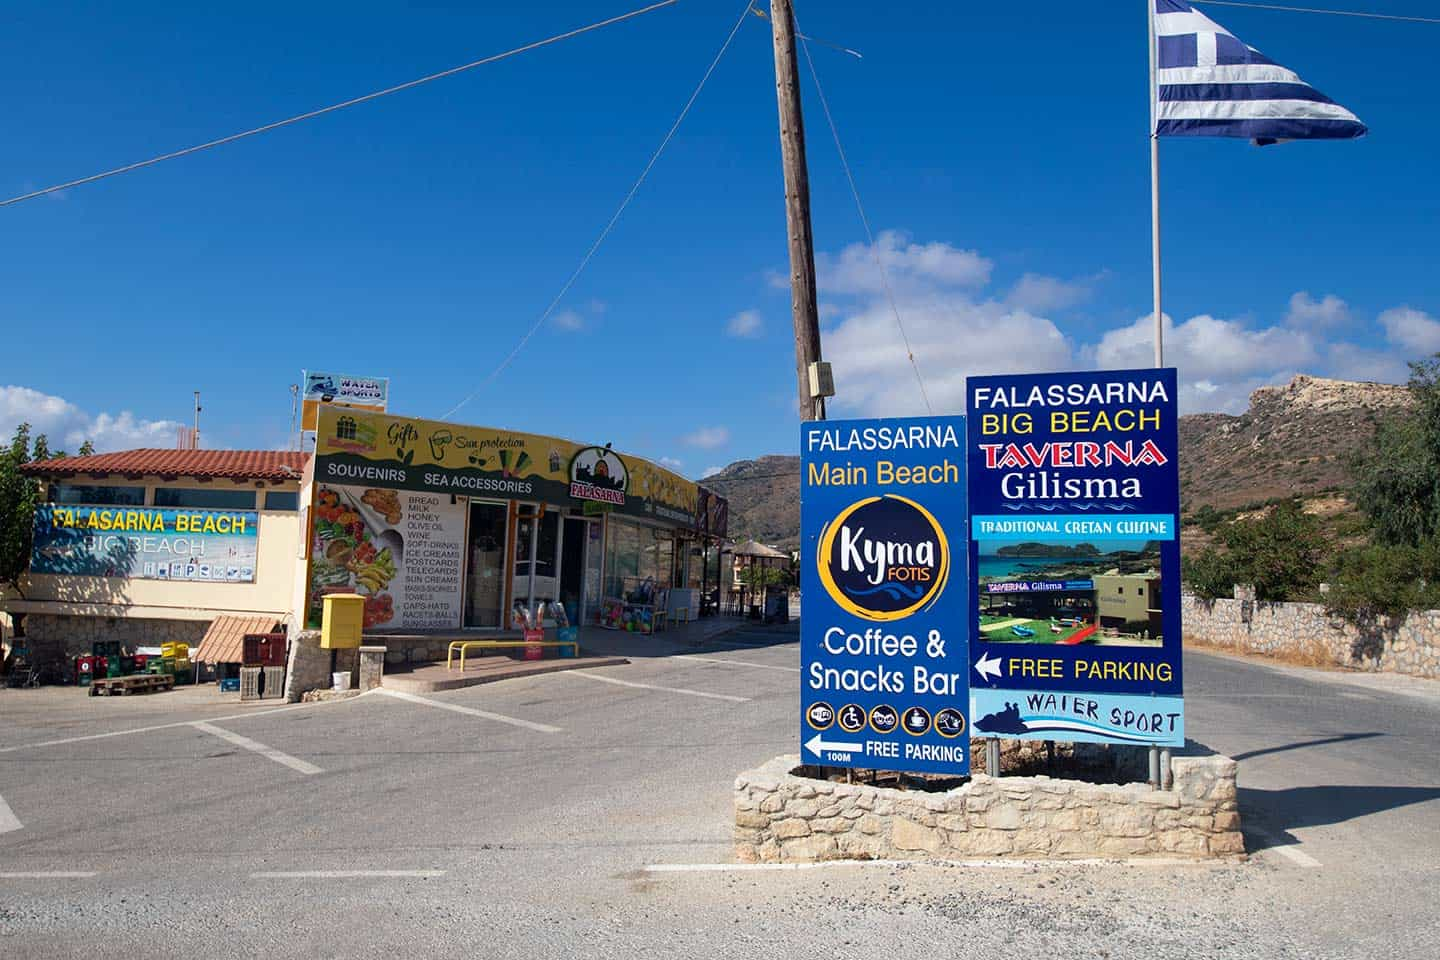 Image of Falassarna Market and signs to the main beach Crete Greece